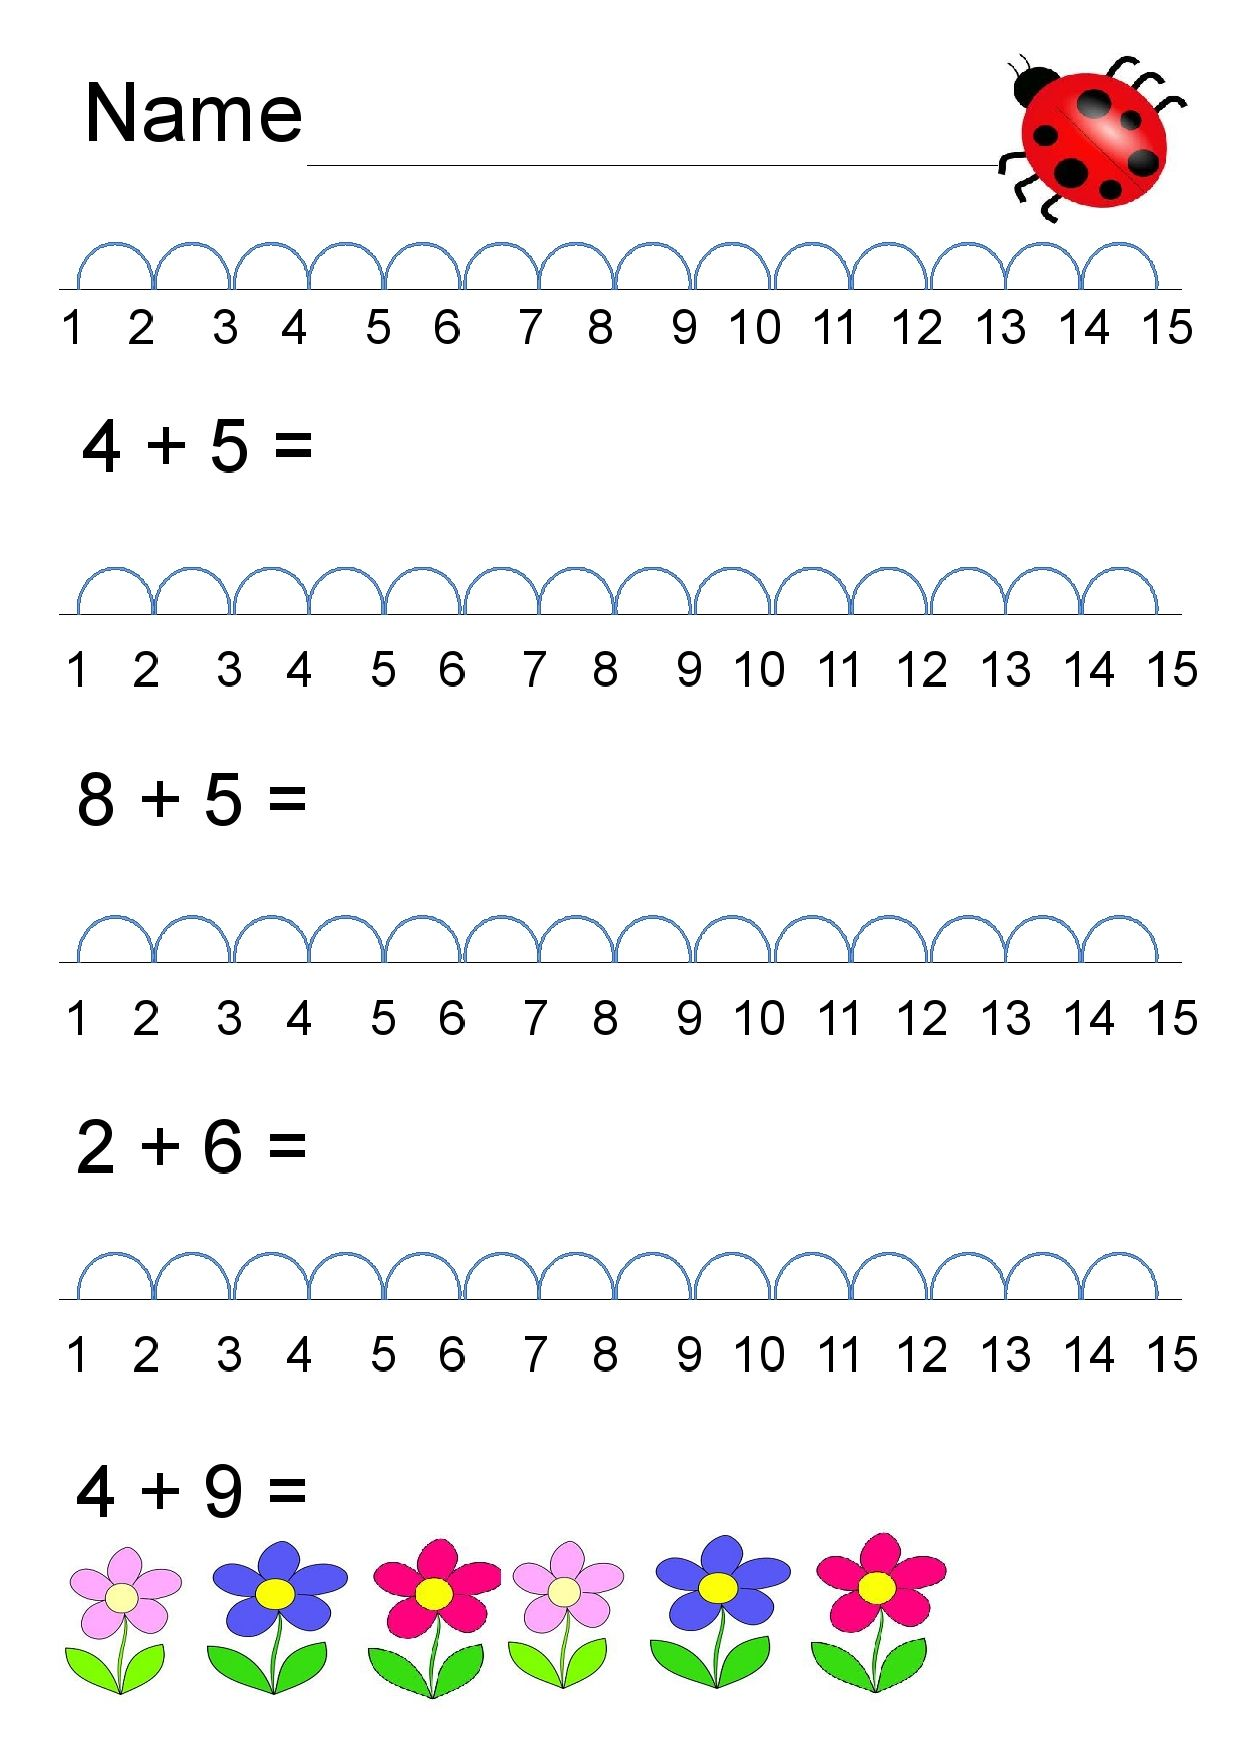 Maths Worksheets For Grade 1 Number Names